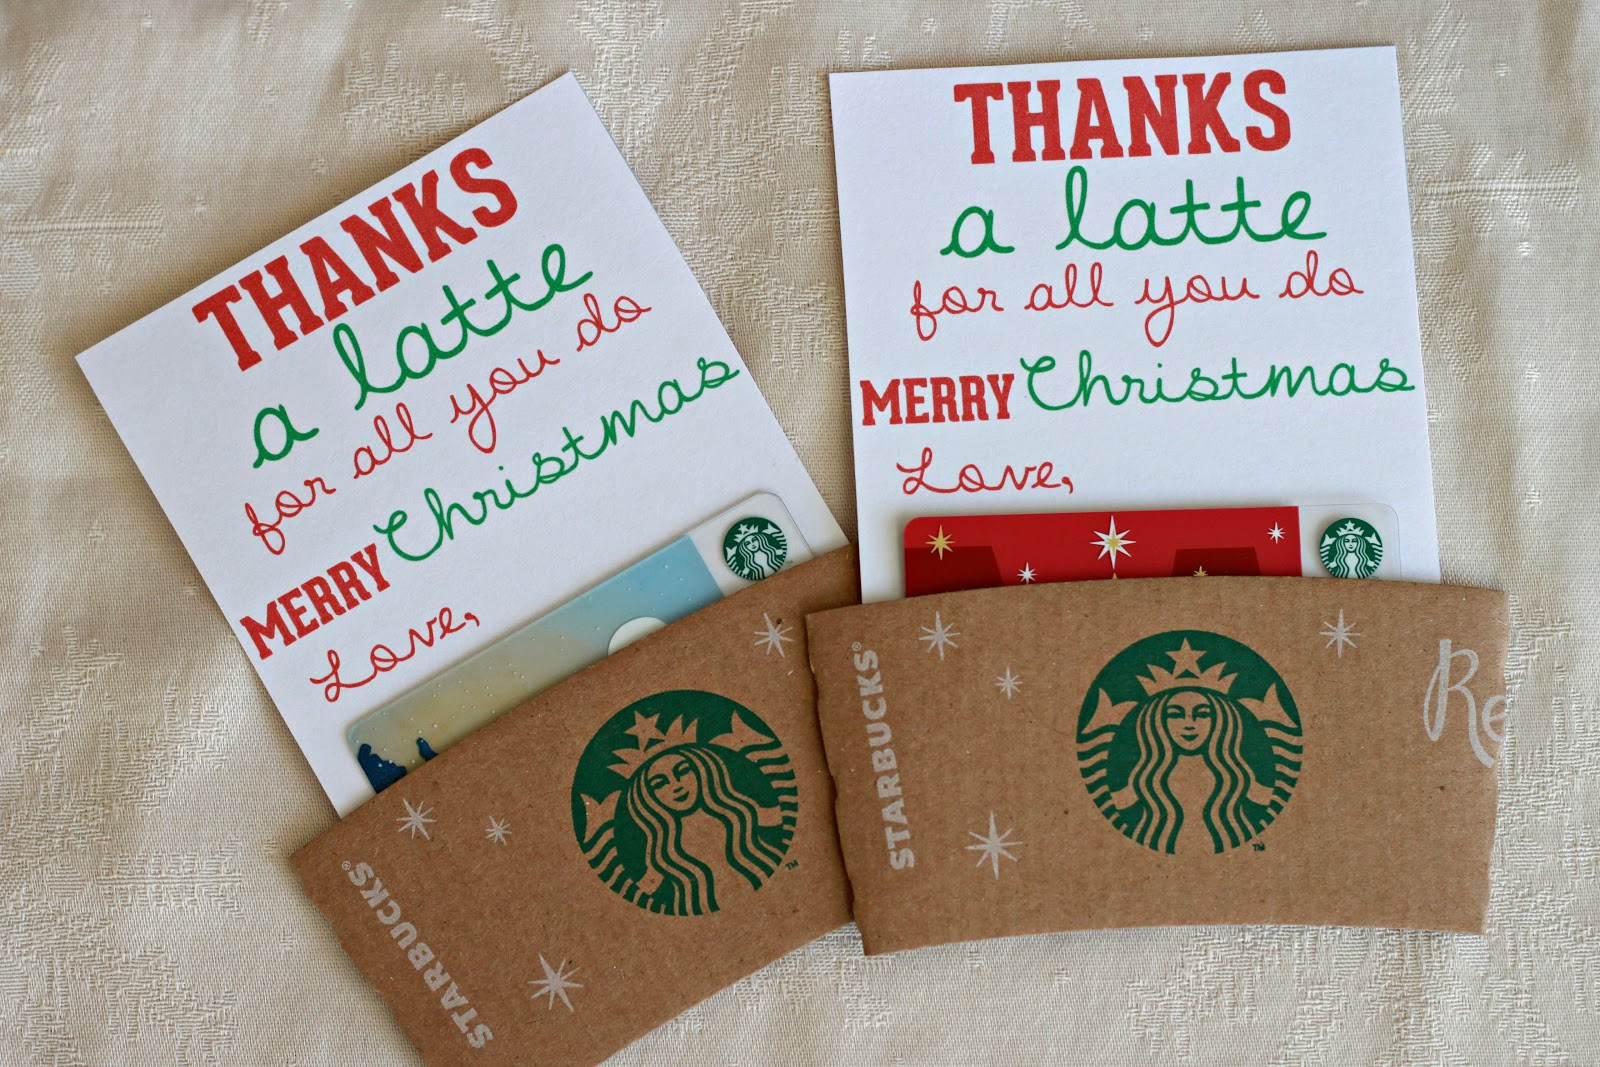 Best ideas about DIY Christmas Present Ideas . Save or Pin Man Starkey thanks a latte Now.